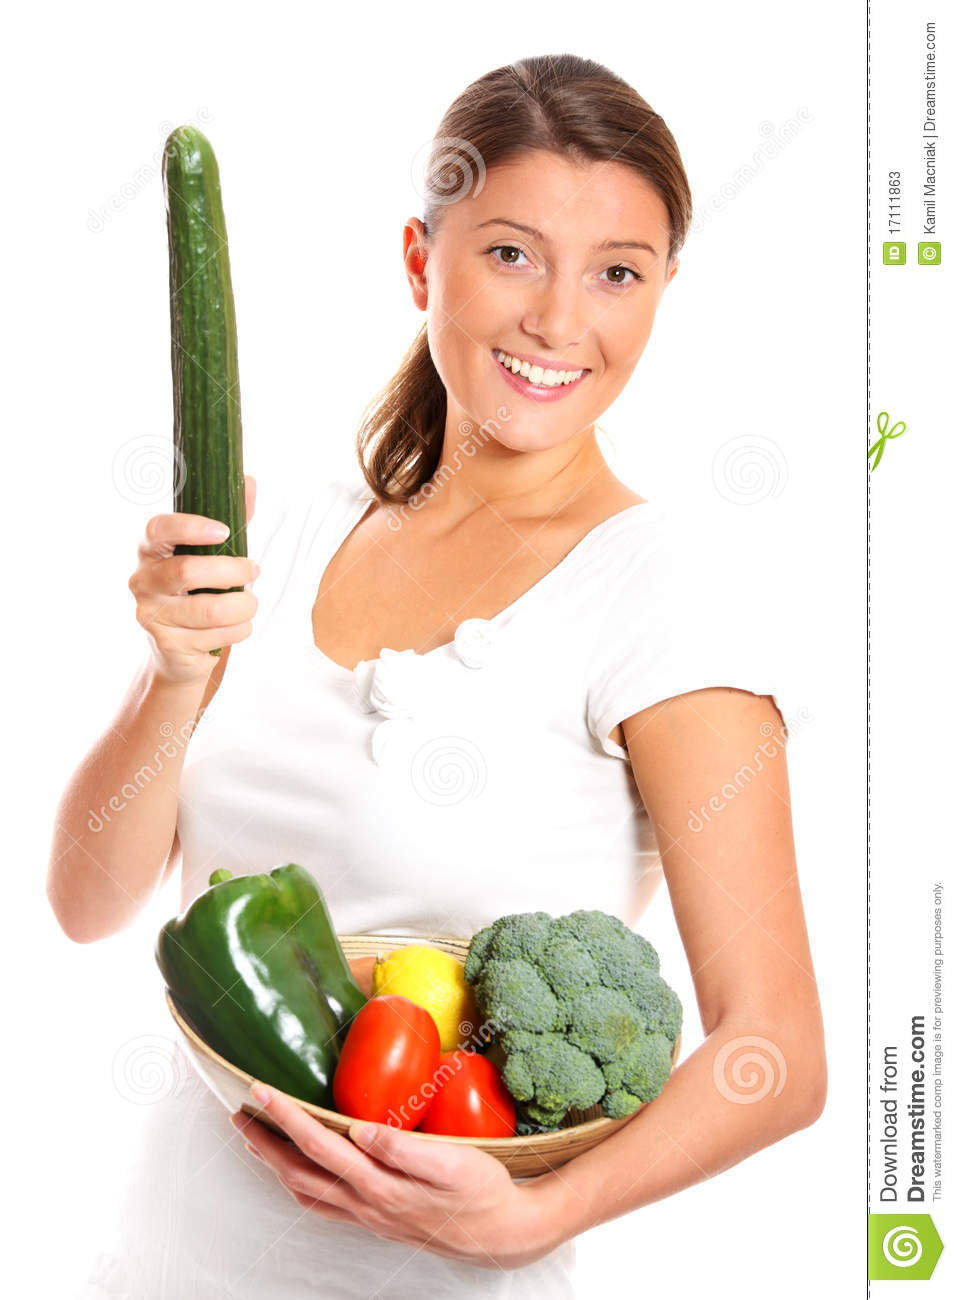 Adult Female With Raw Food Diet